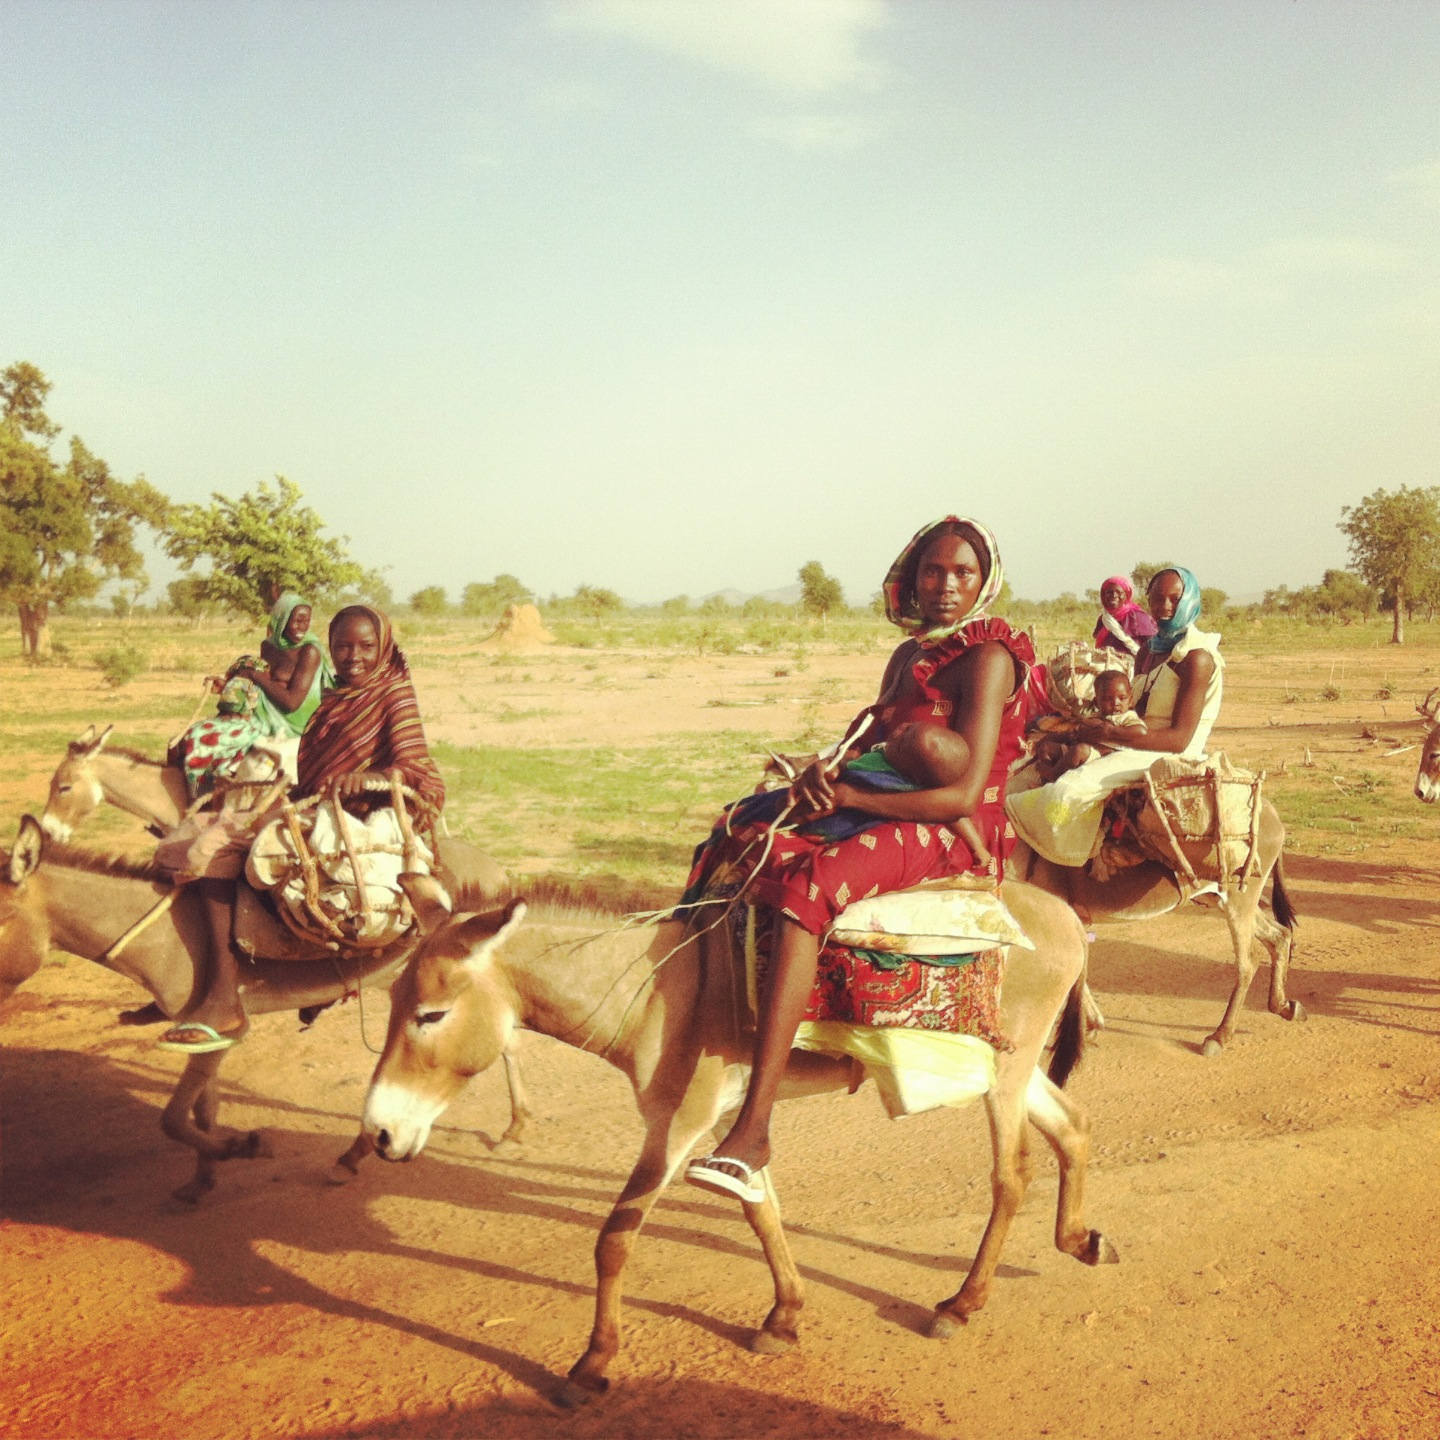 Women journey to gather water.